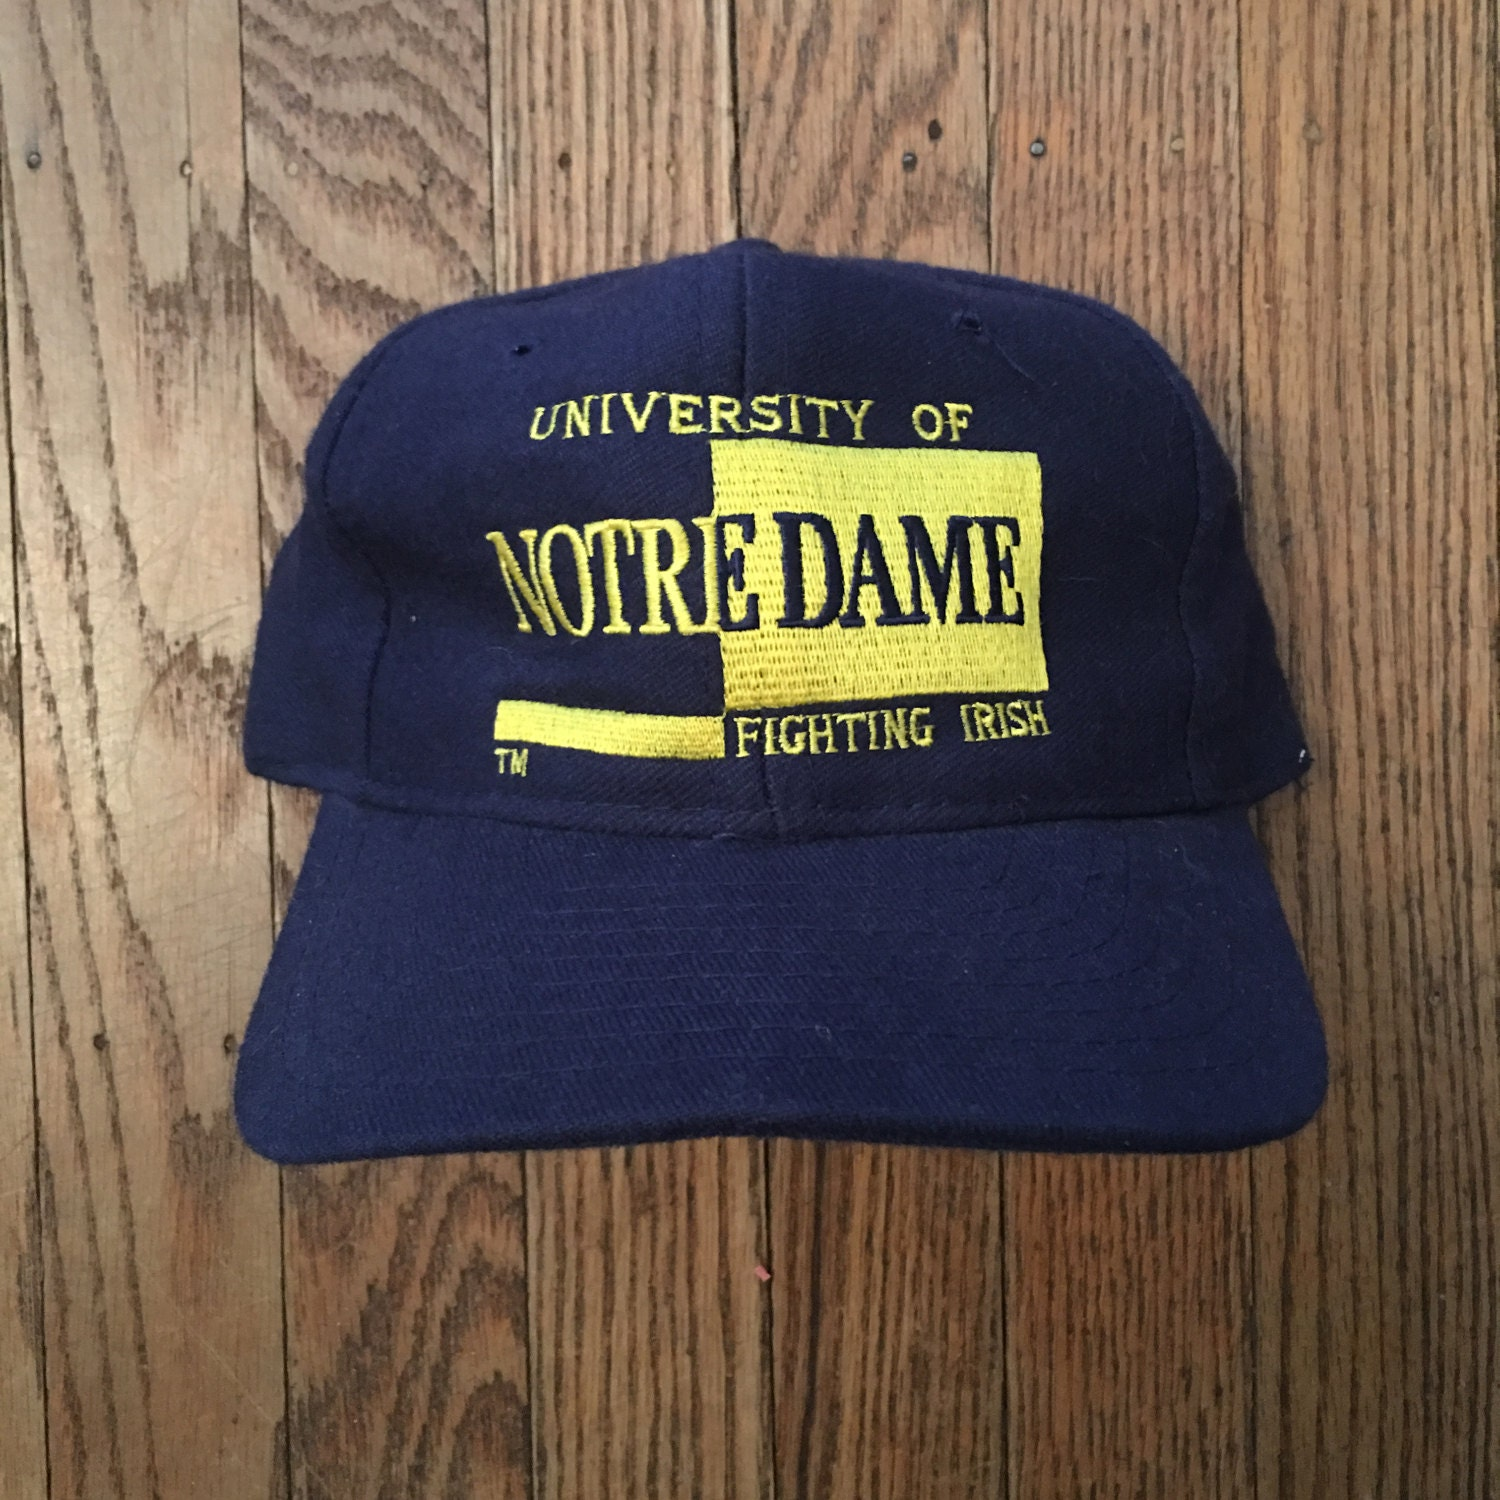 0fdc496d1de15 ... amazon vintage 90s notre dame fighting irish ncaa snapback hat baseball  cap cb139 0d30a